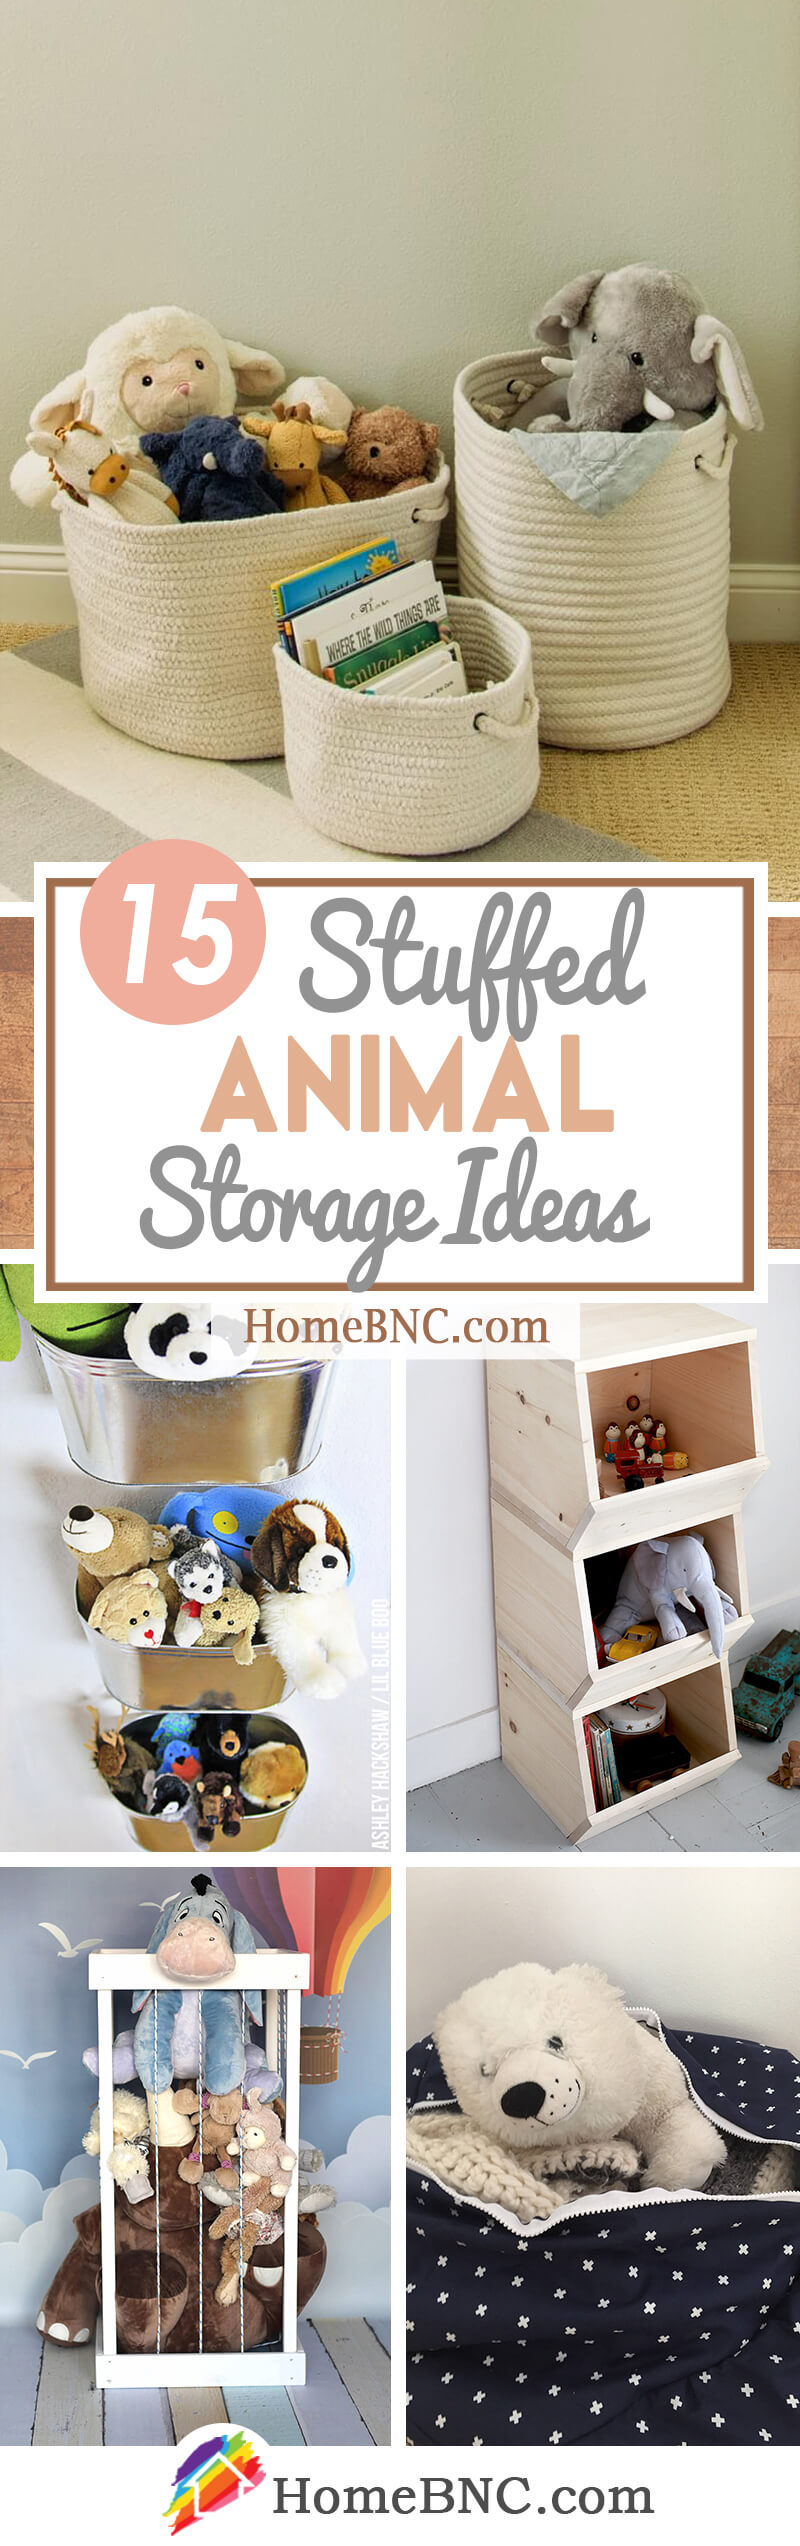 Vintage Smokey The Bear Teddy Bear, 15 Best Stuffed Animal Storage And Organizing Ideas For 2020